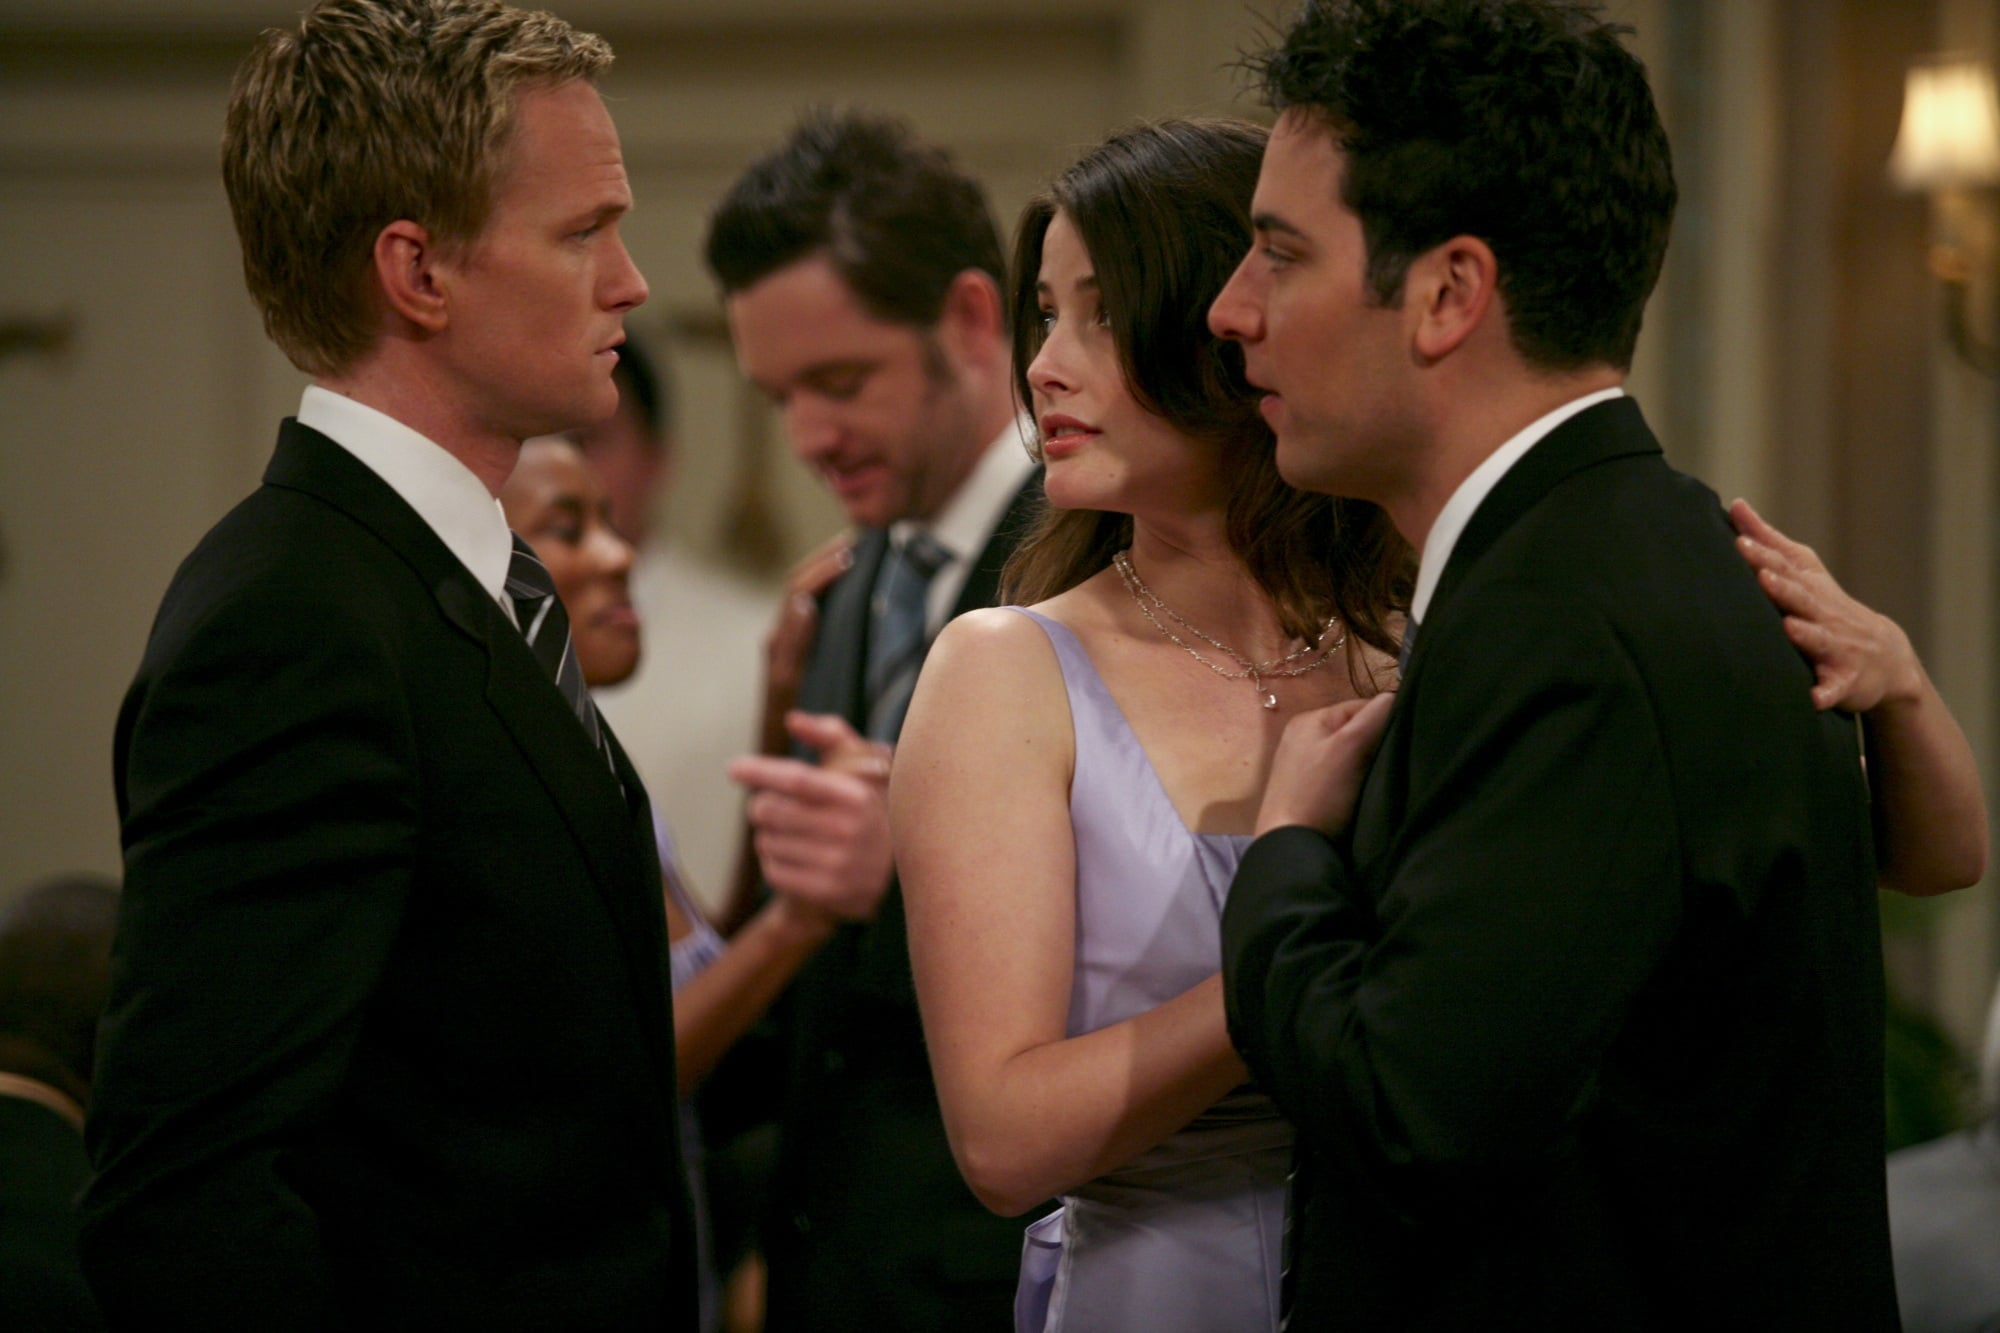 Amid all the romance, Ted and Robin have to admit to Barney that they broke up.